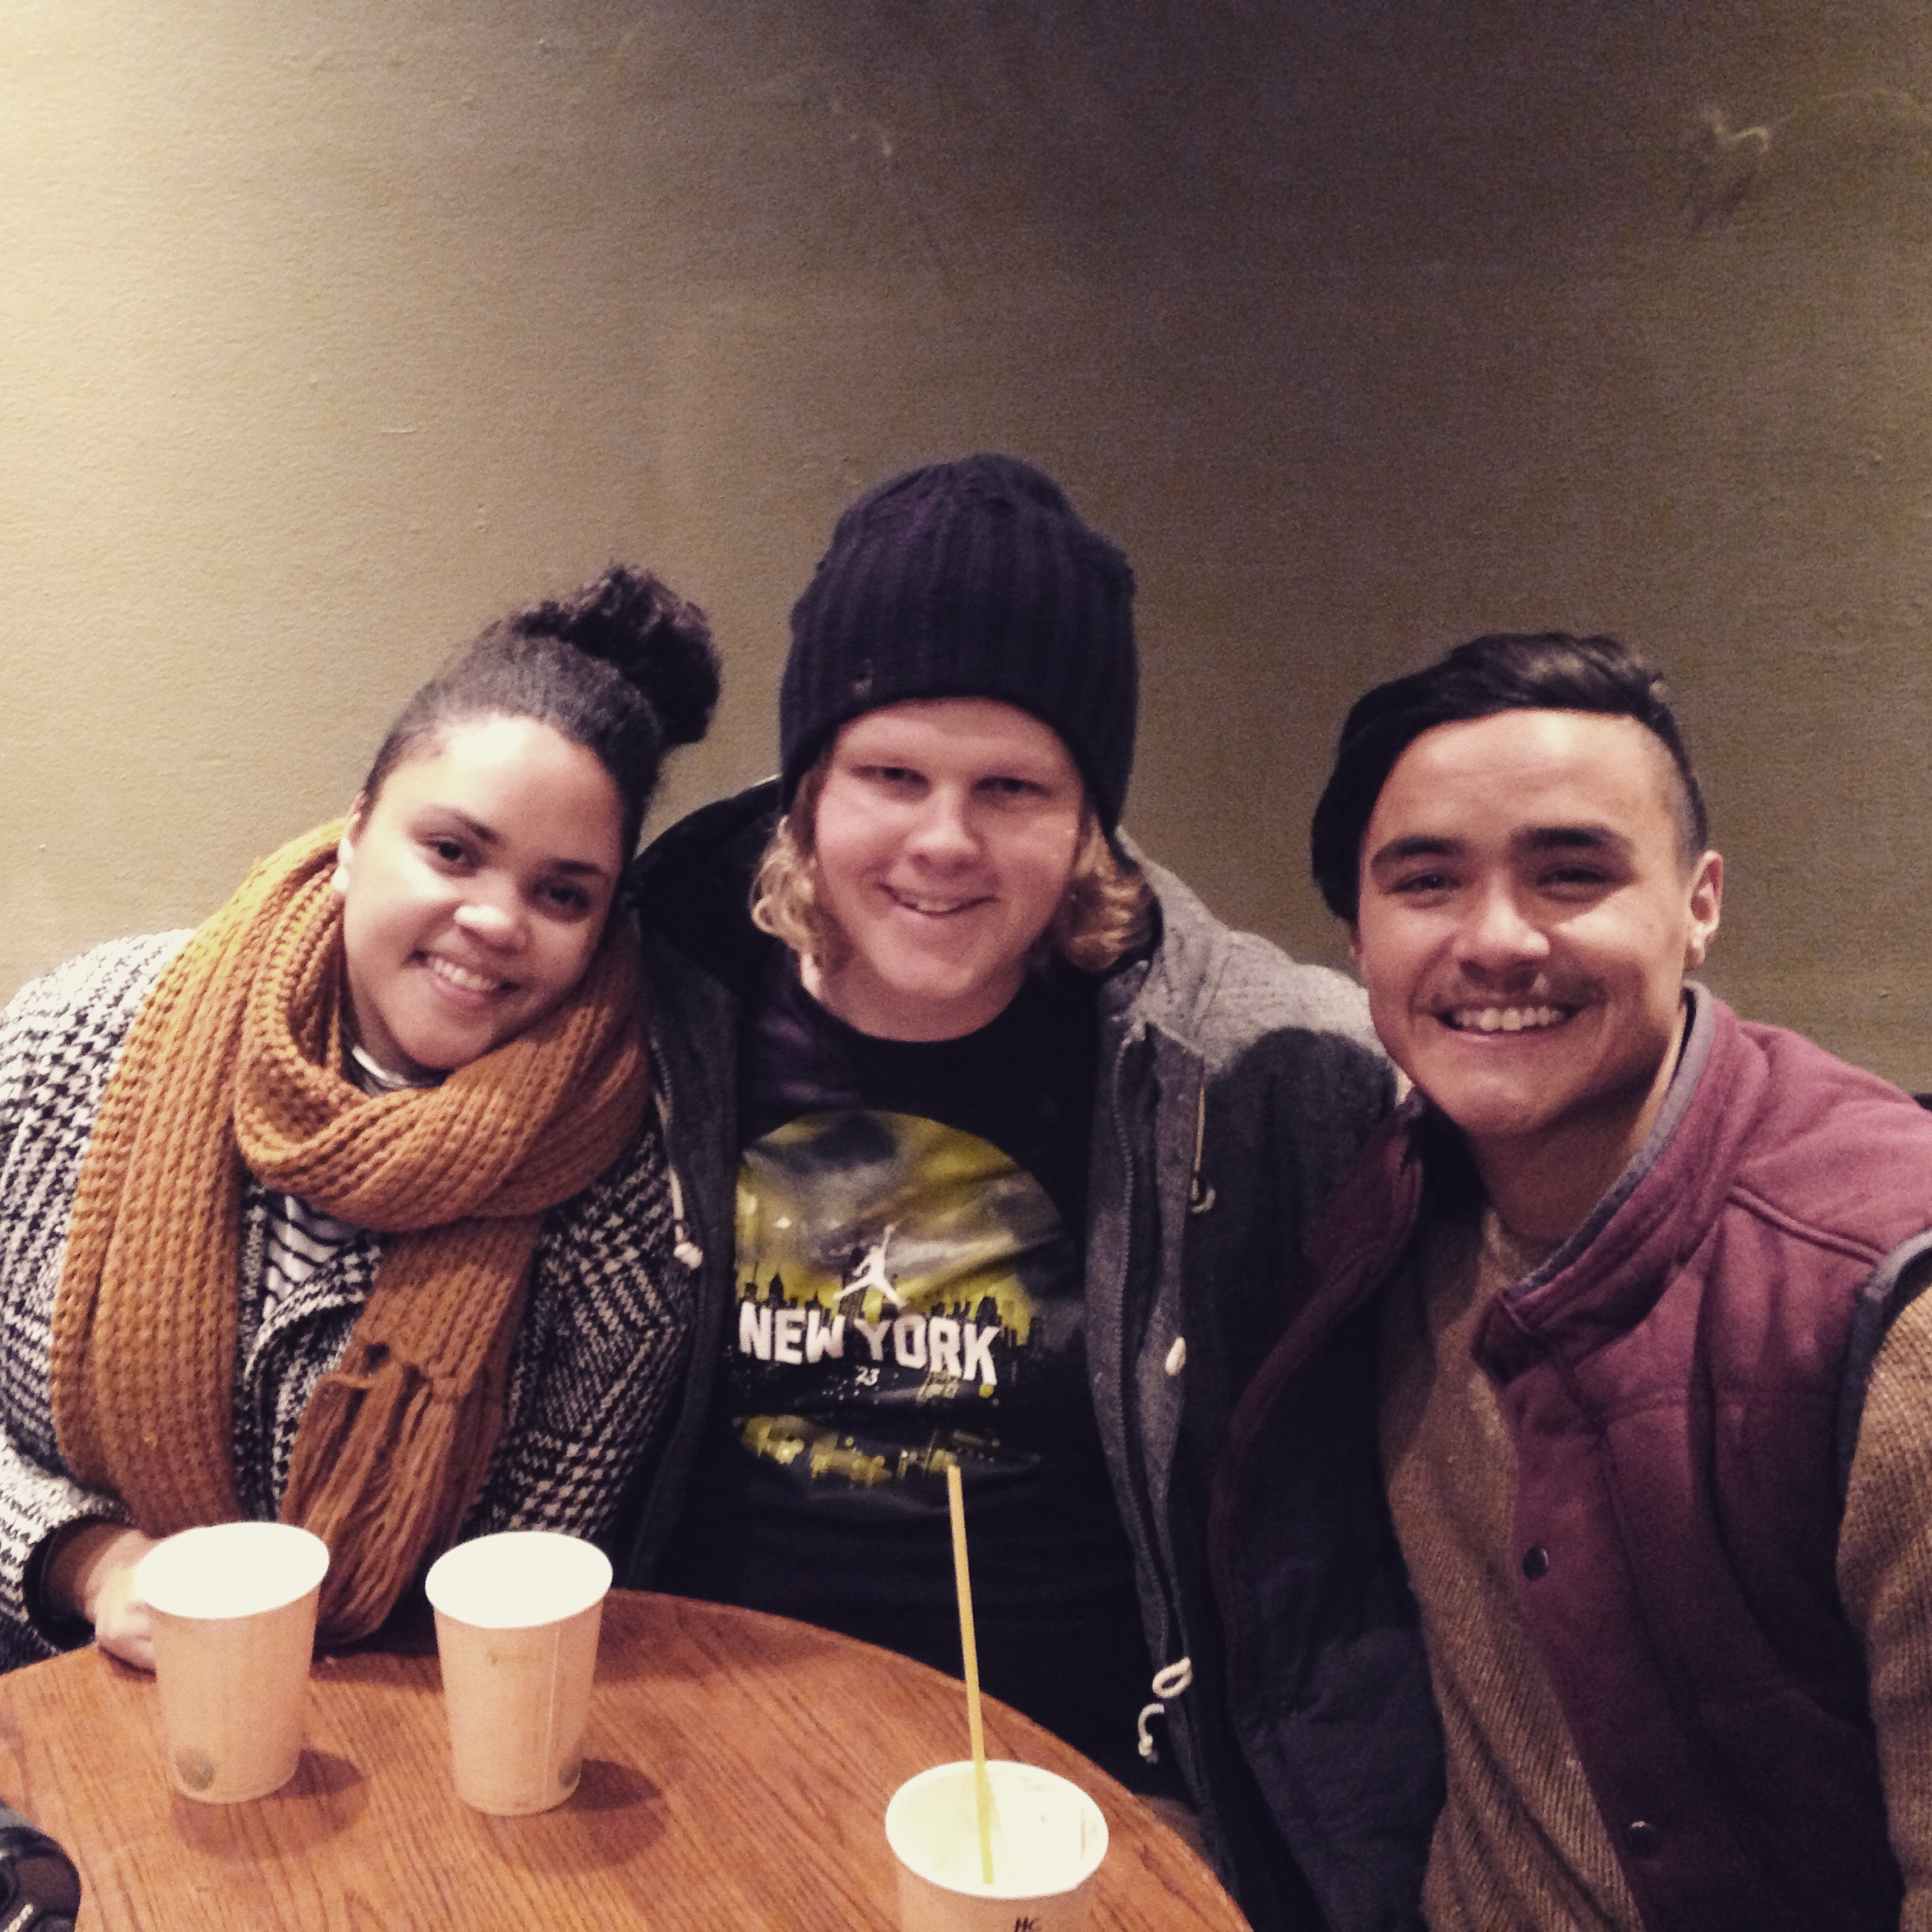 With my home-boy and home-girl from my home state. To see Rhi and Hayden was so special. They are special lovers. Chai time with old friends, in a snow town = the dream.